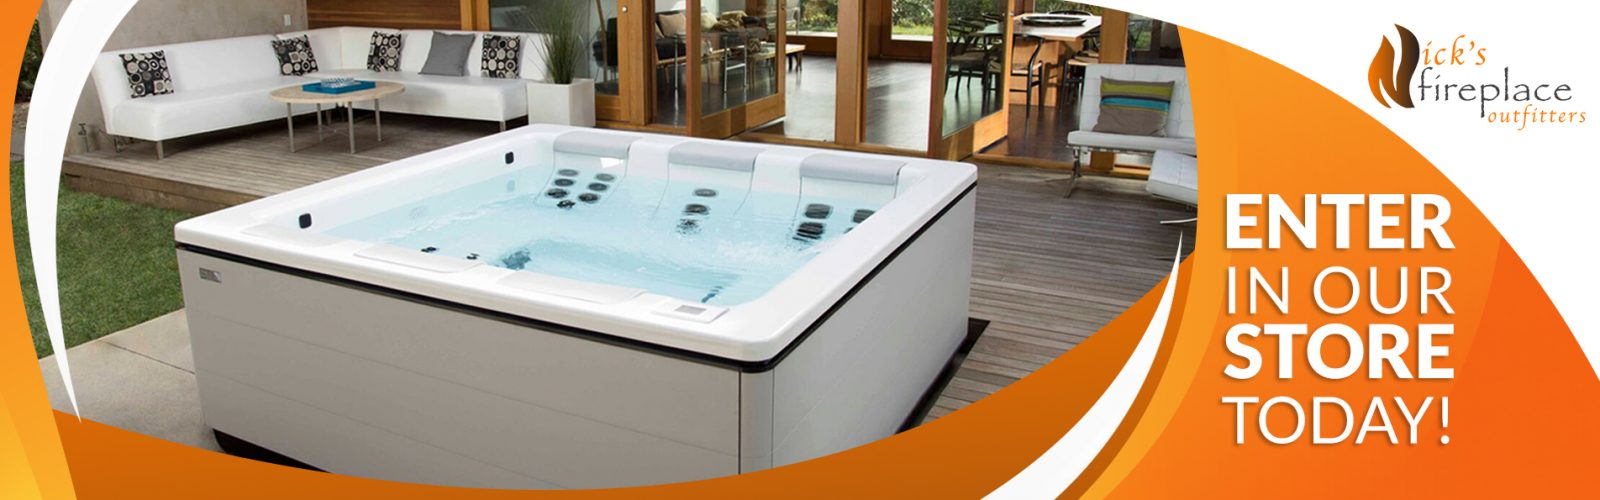 Win a Bullfrog Spa - Enter Our Store Today!